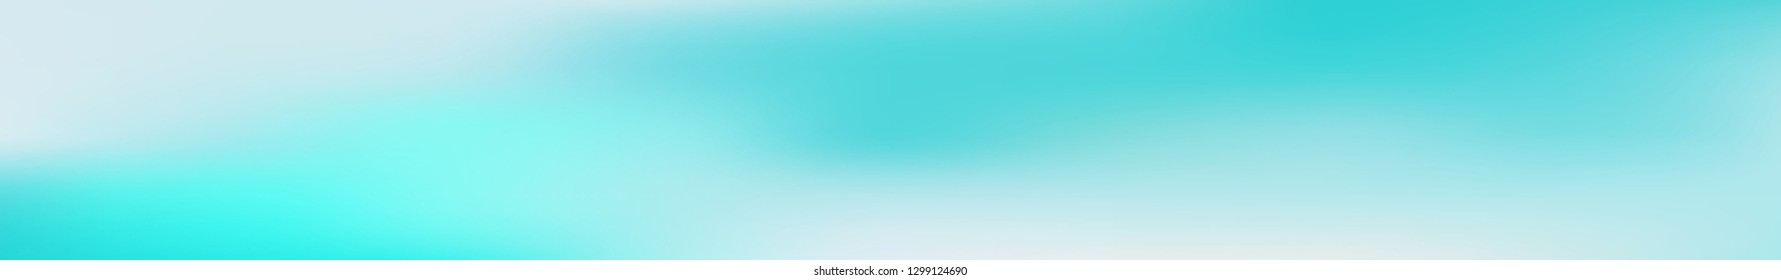 Panoramic gradient mesh abstract background.  Horizontal view for a glass panels - skinali. Trendy soft colors and smooth blend. Modern template with gradient mesh.